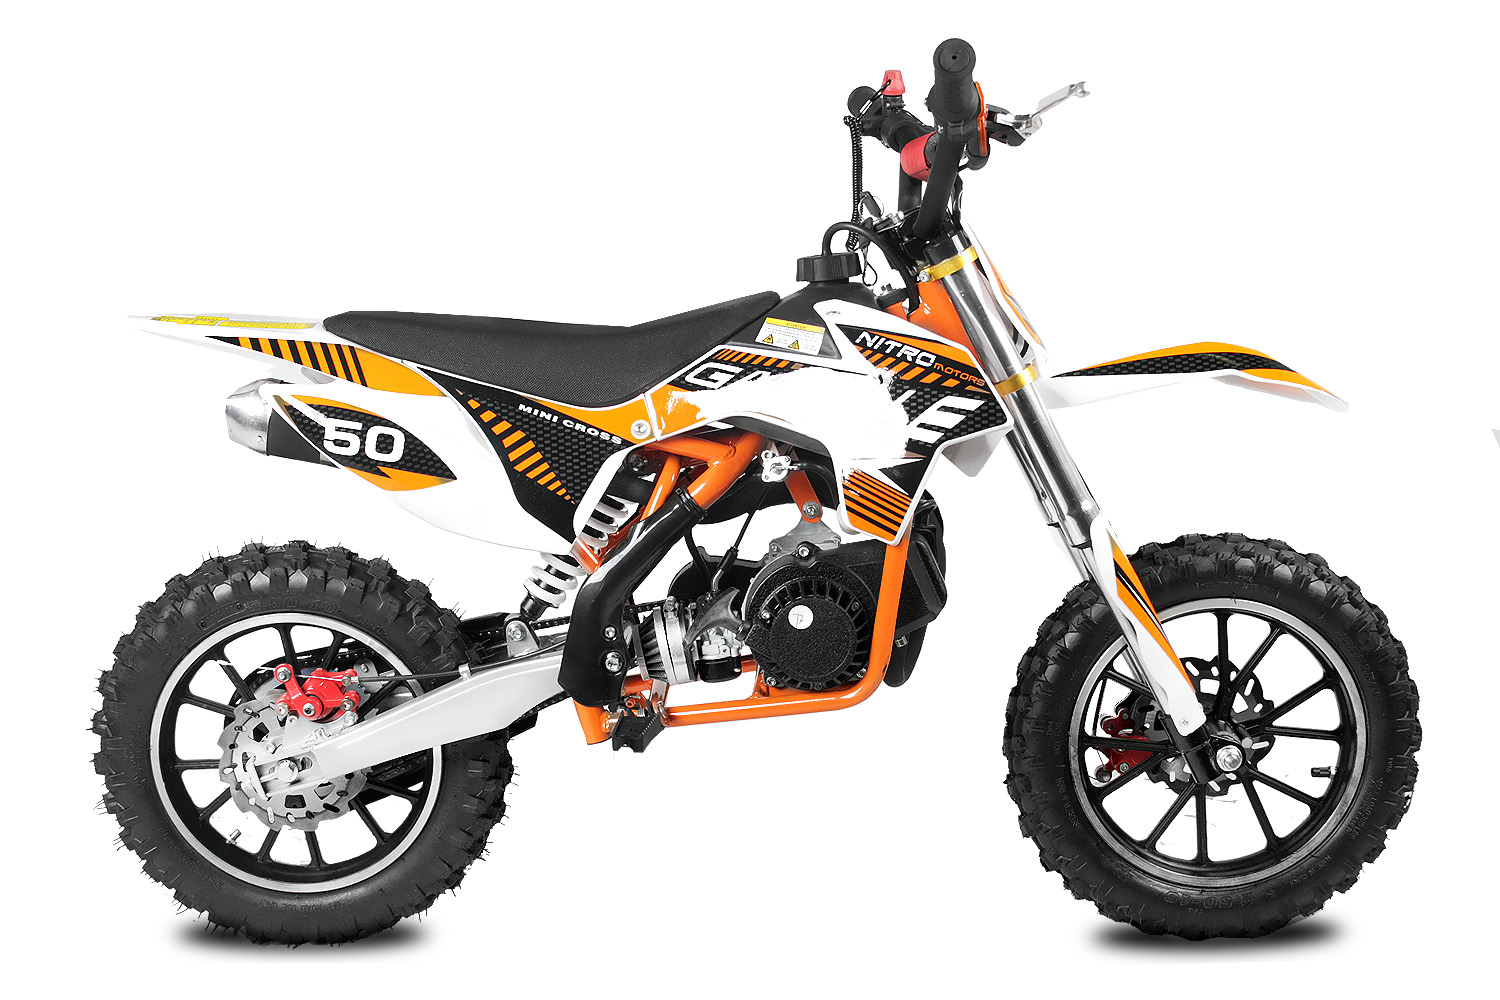 nitro gazelle 49cc 2 takt dirt bike motocross. Black Bedroom Furniture Sets. Home Design Ideas